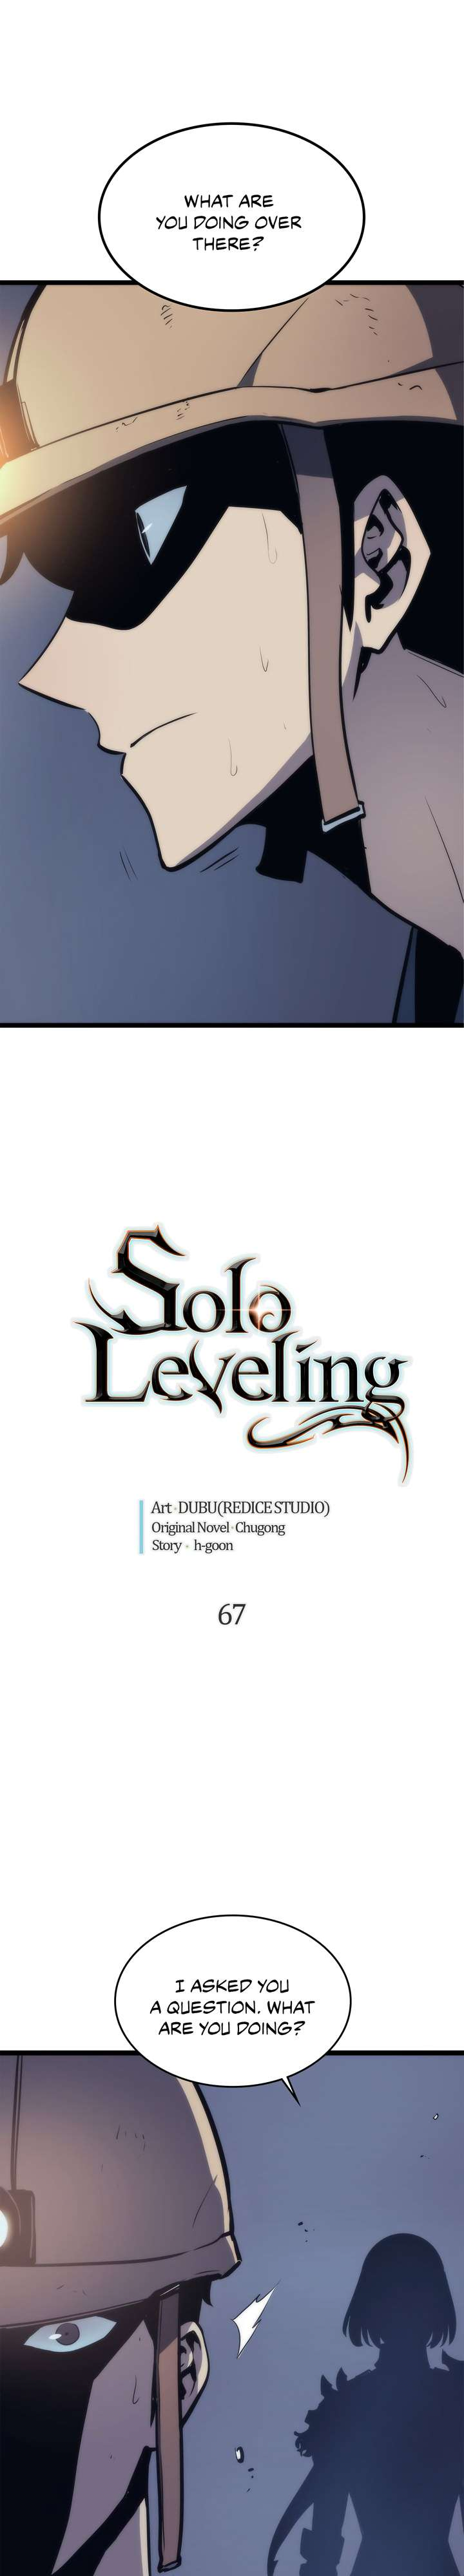 Solo Leveling Chapter 67 Page 1